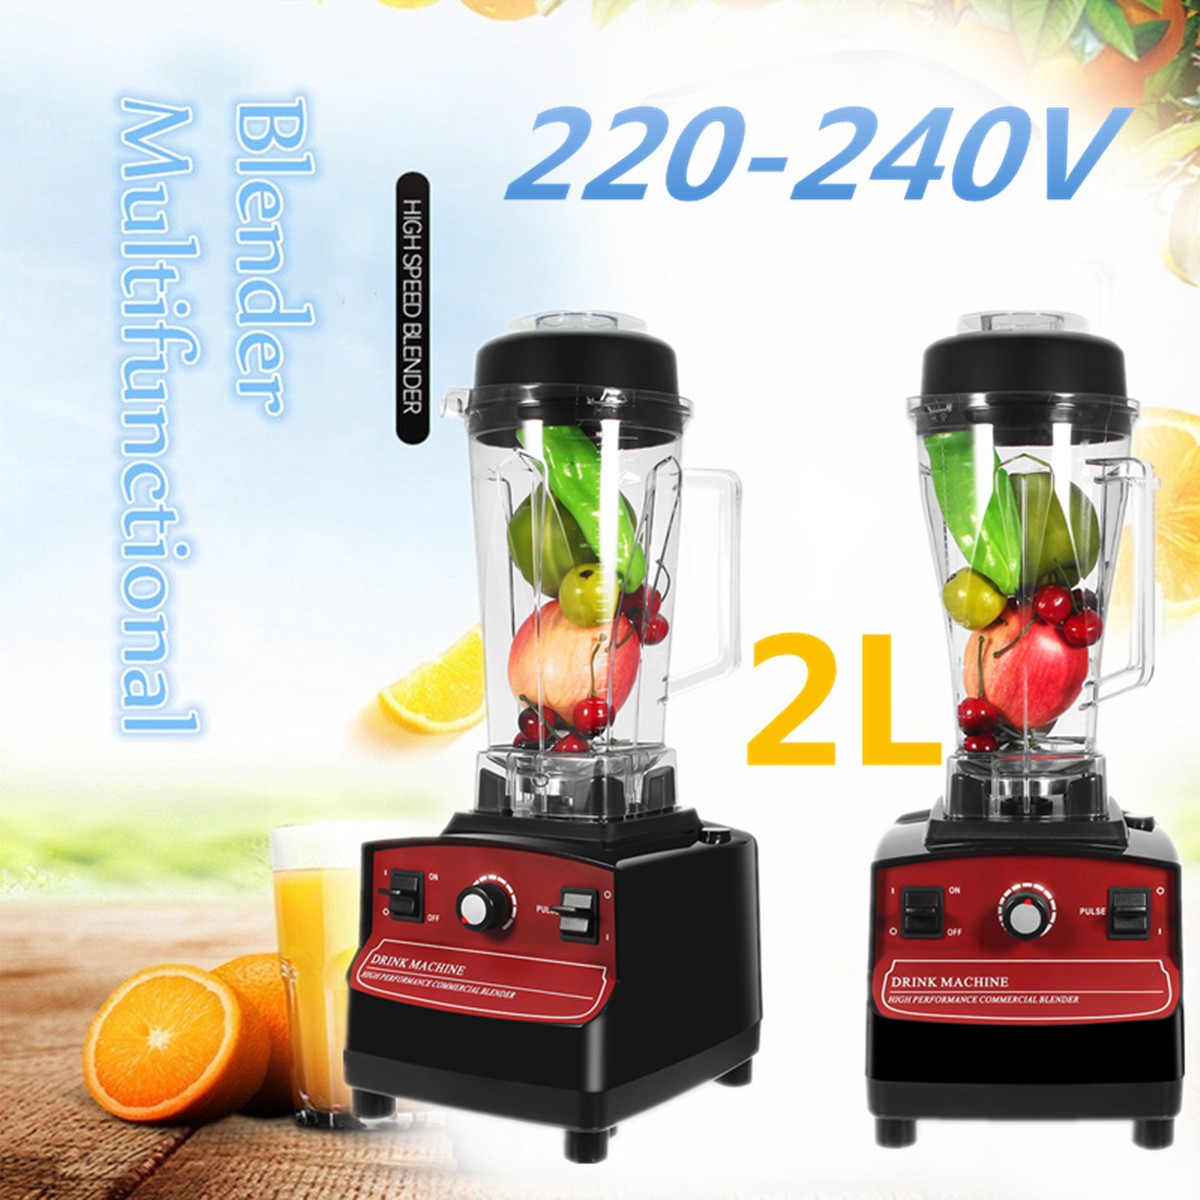 все цены на AU/EU Plug Commercial-Blender 2L 1200W 220-240V Fruit Smoothie Mixer Juicer Machine Food Processor Stainless Steel Cutting онлайн